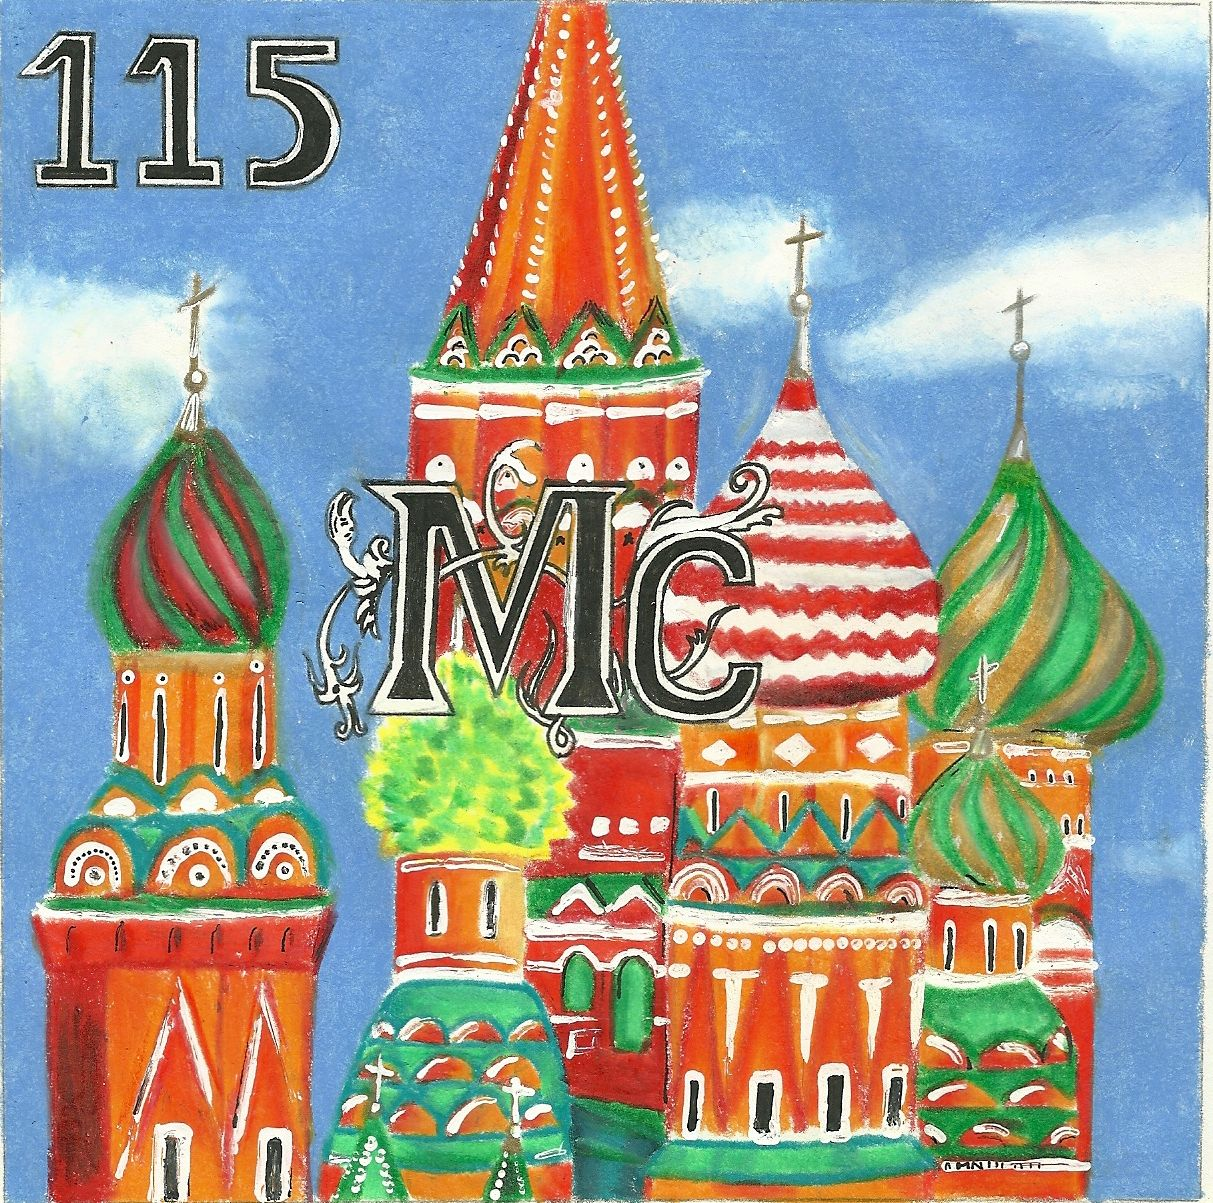 elemental tile of moscovium showing St. Basil's Cathedral created using pencil crayons, a black ink pen and white paint.